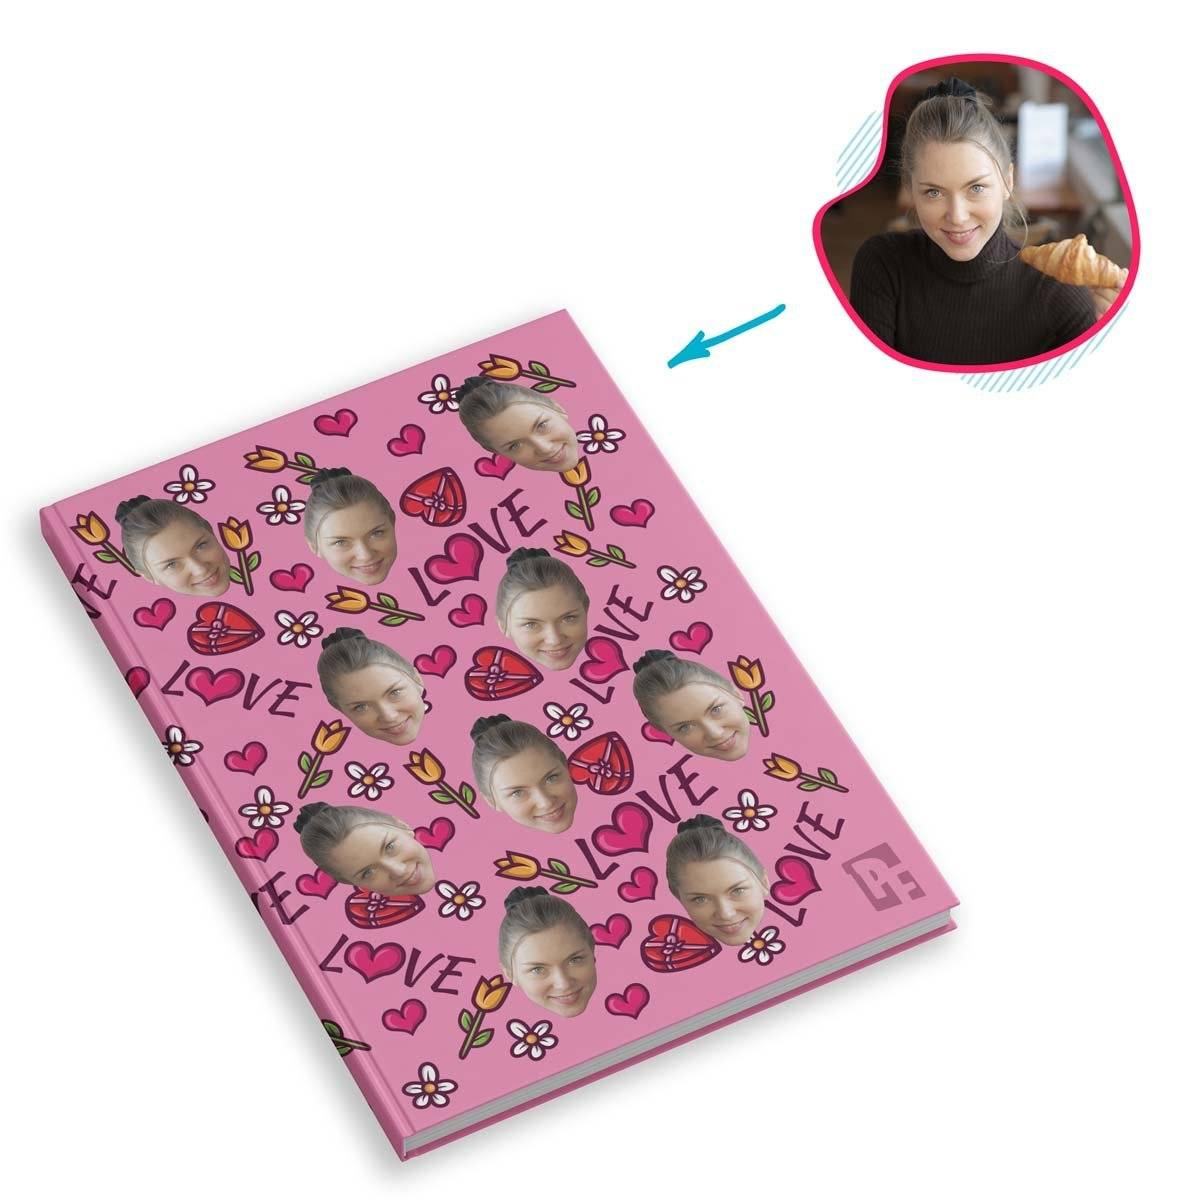 pink Hearts and Flowers Notebook personalized with photo of face printed on them